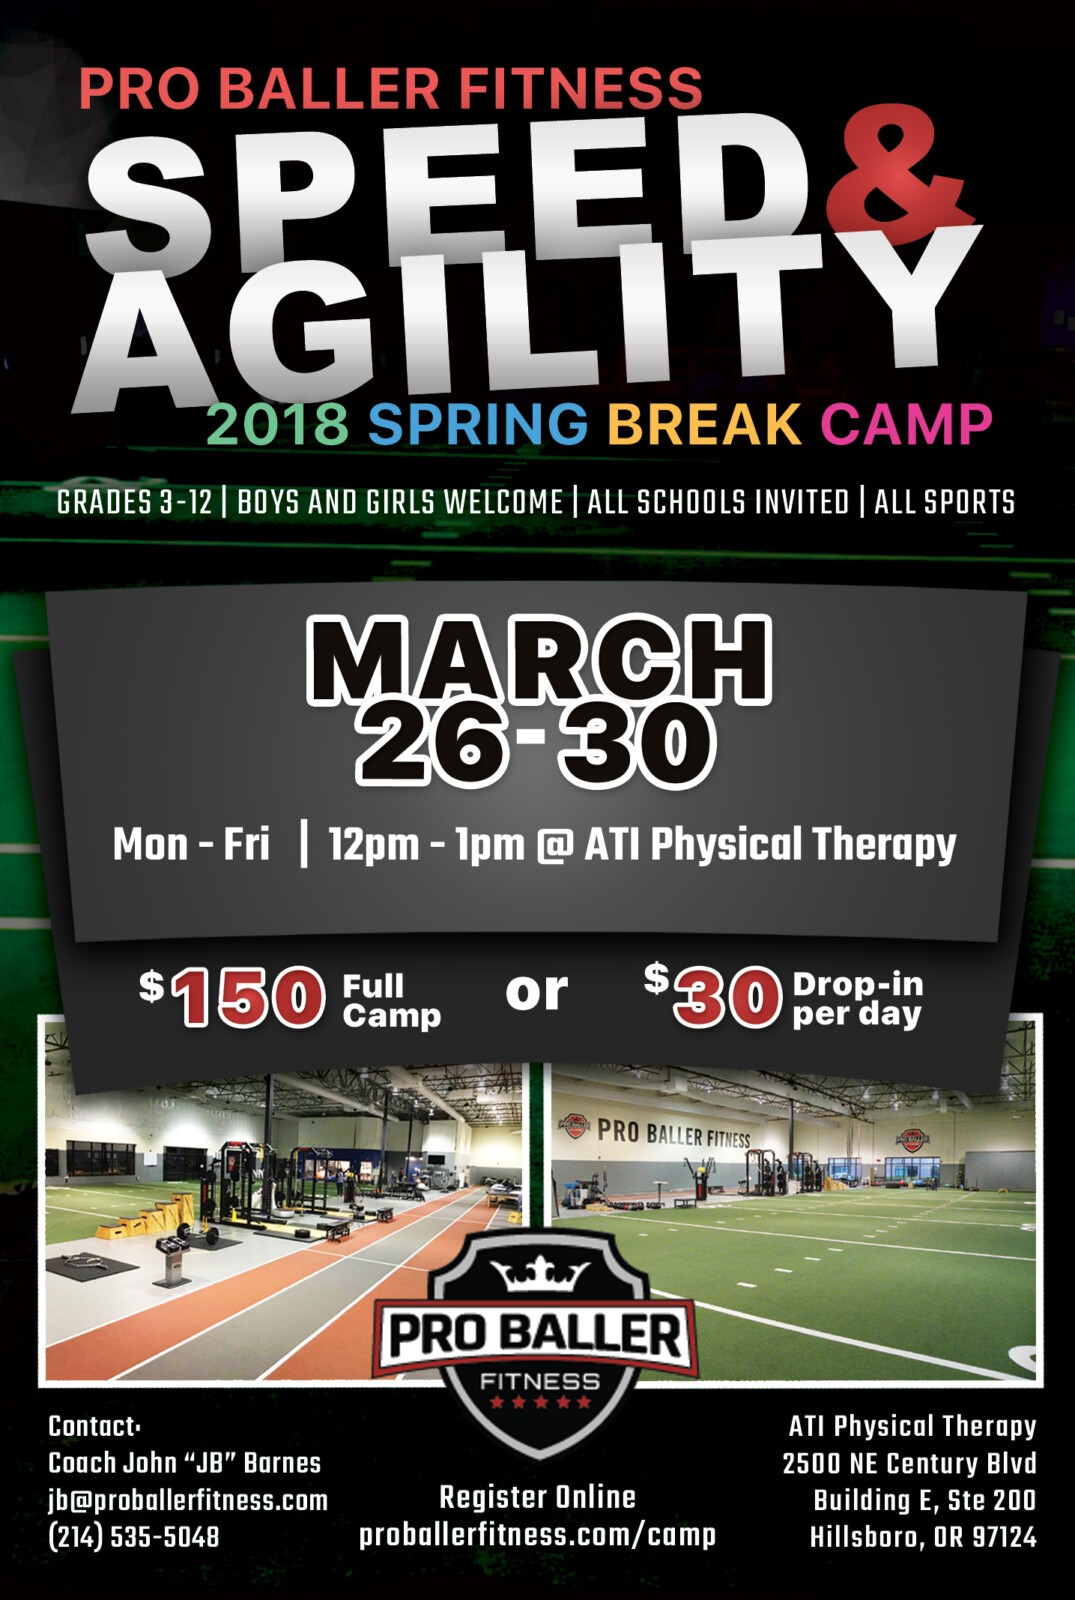 Pro Baller Fitness 2018 Spring Break Camp